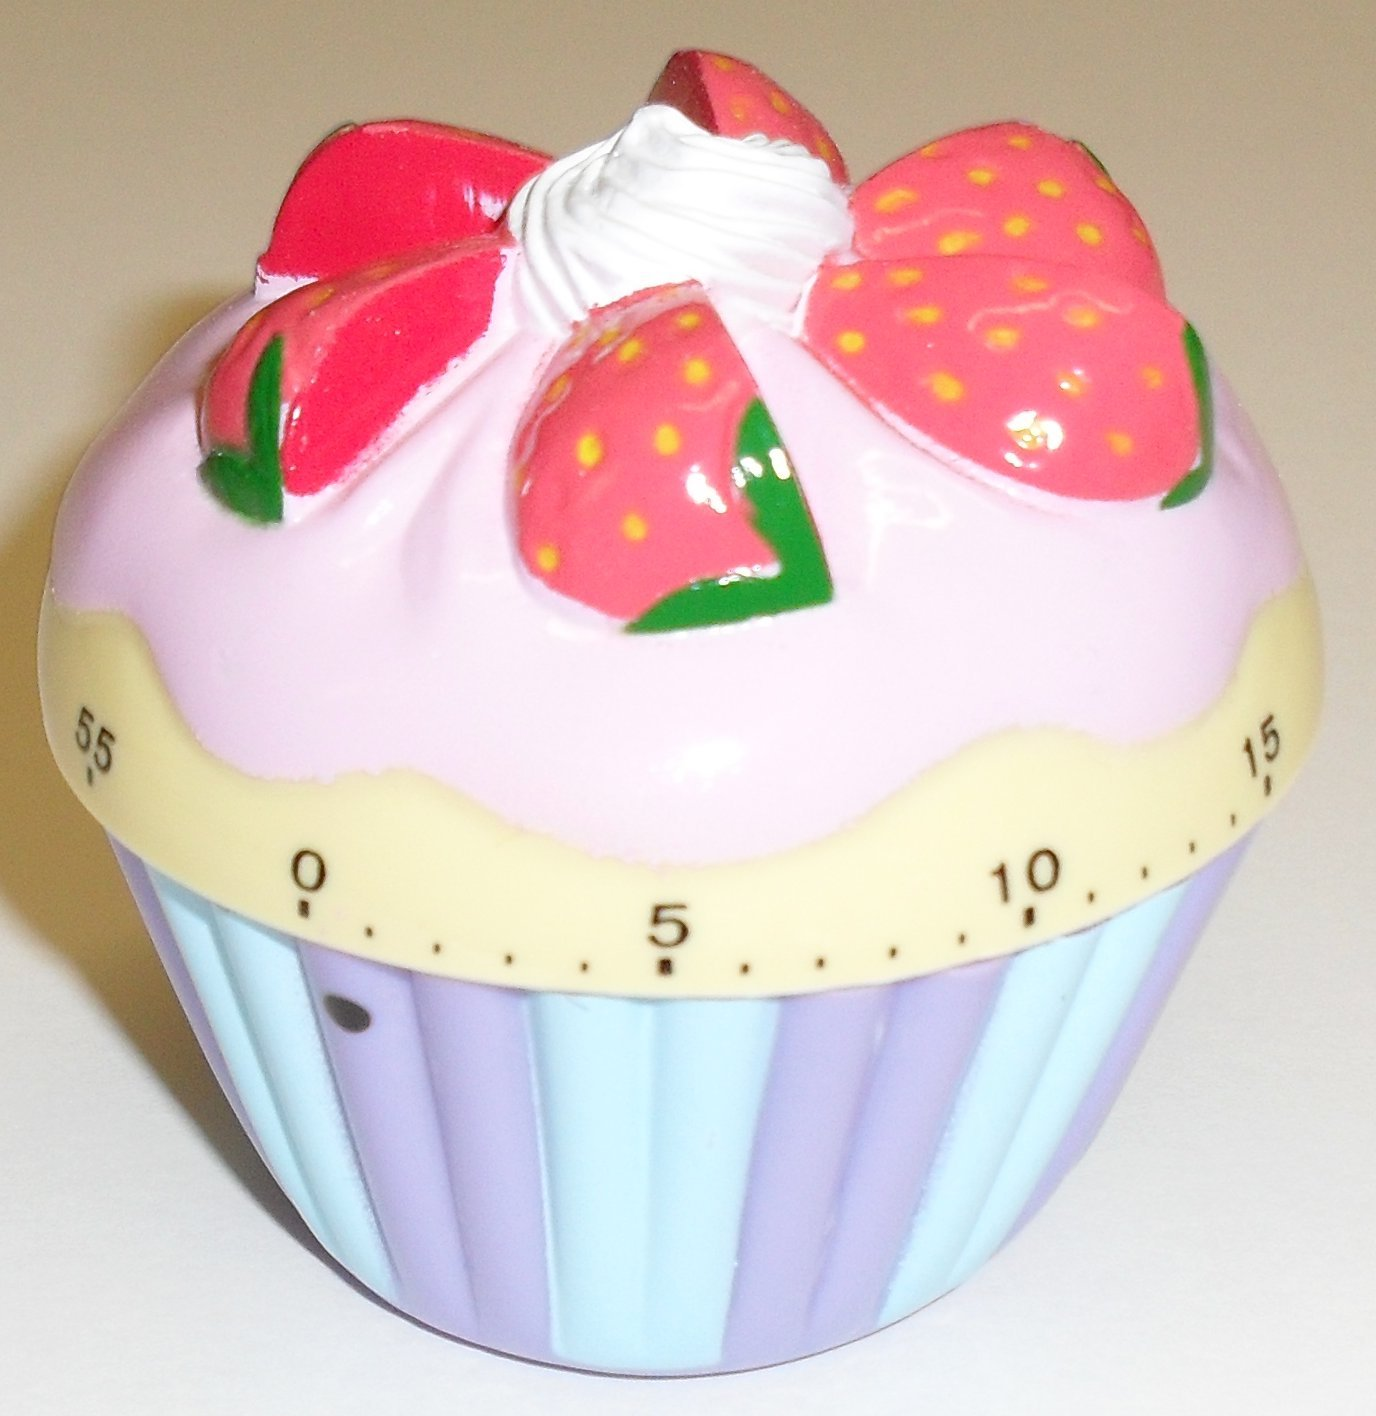 cup cake kitchen timer choice of 2 designs baby